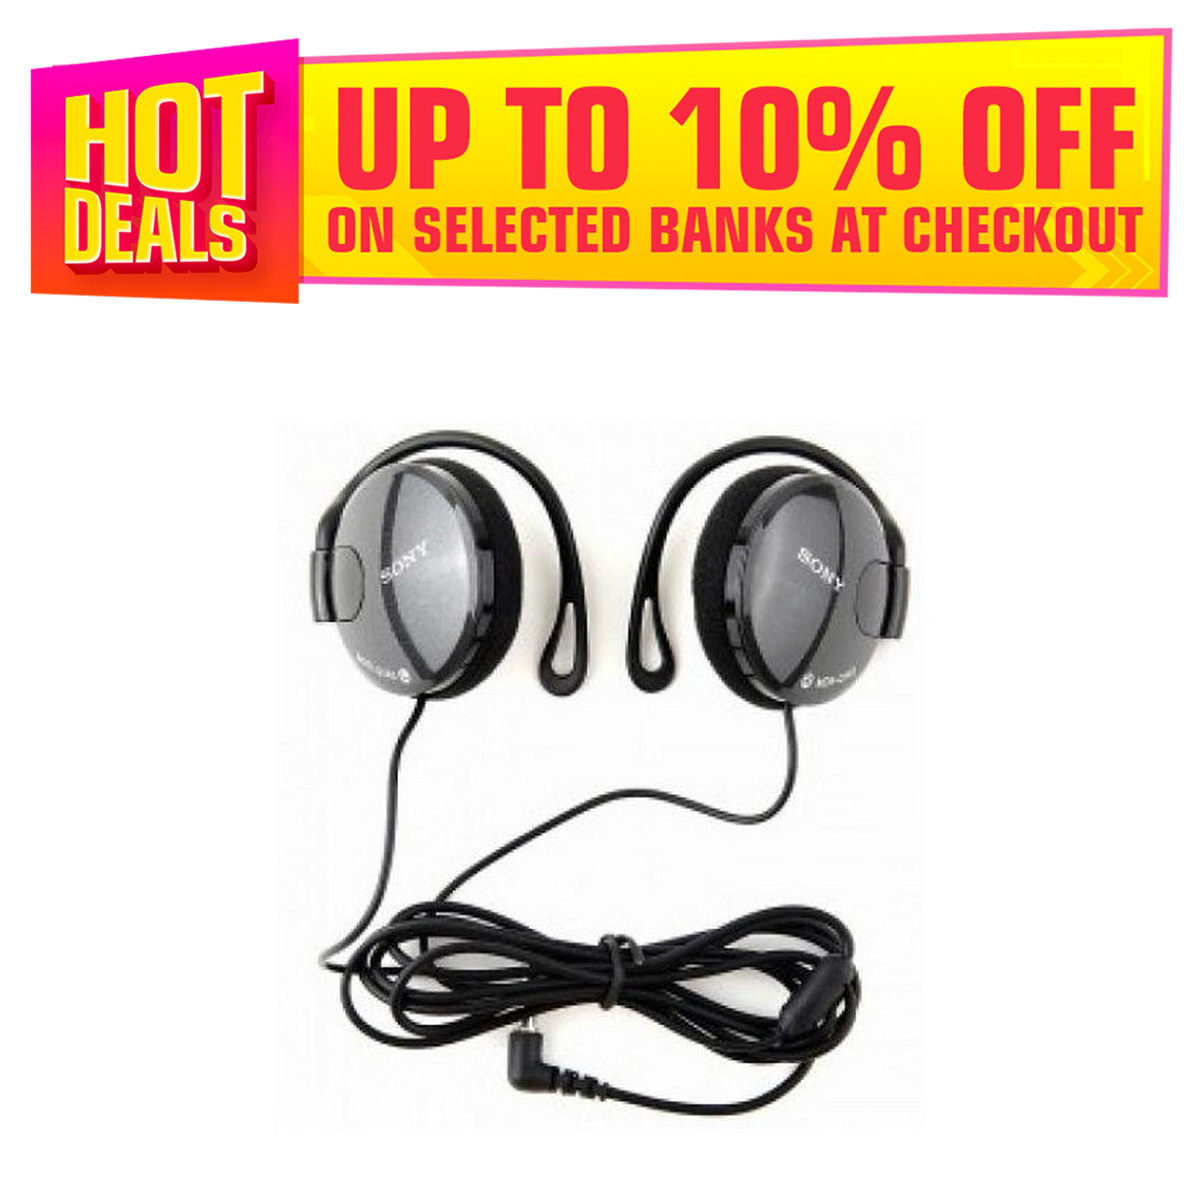 Woofer Headphones With Earhook Good Quality Sound - Ear Loops Design And Can Be Hang On The Ears - Stylish